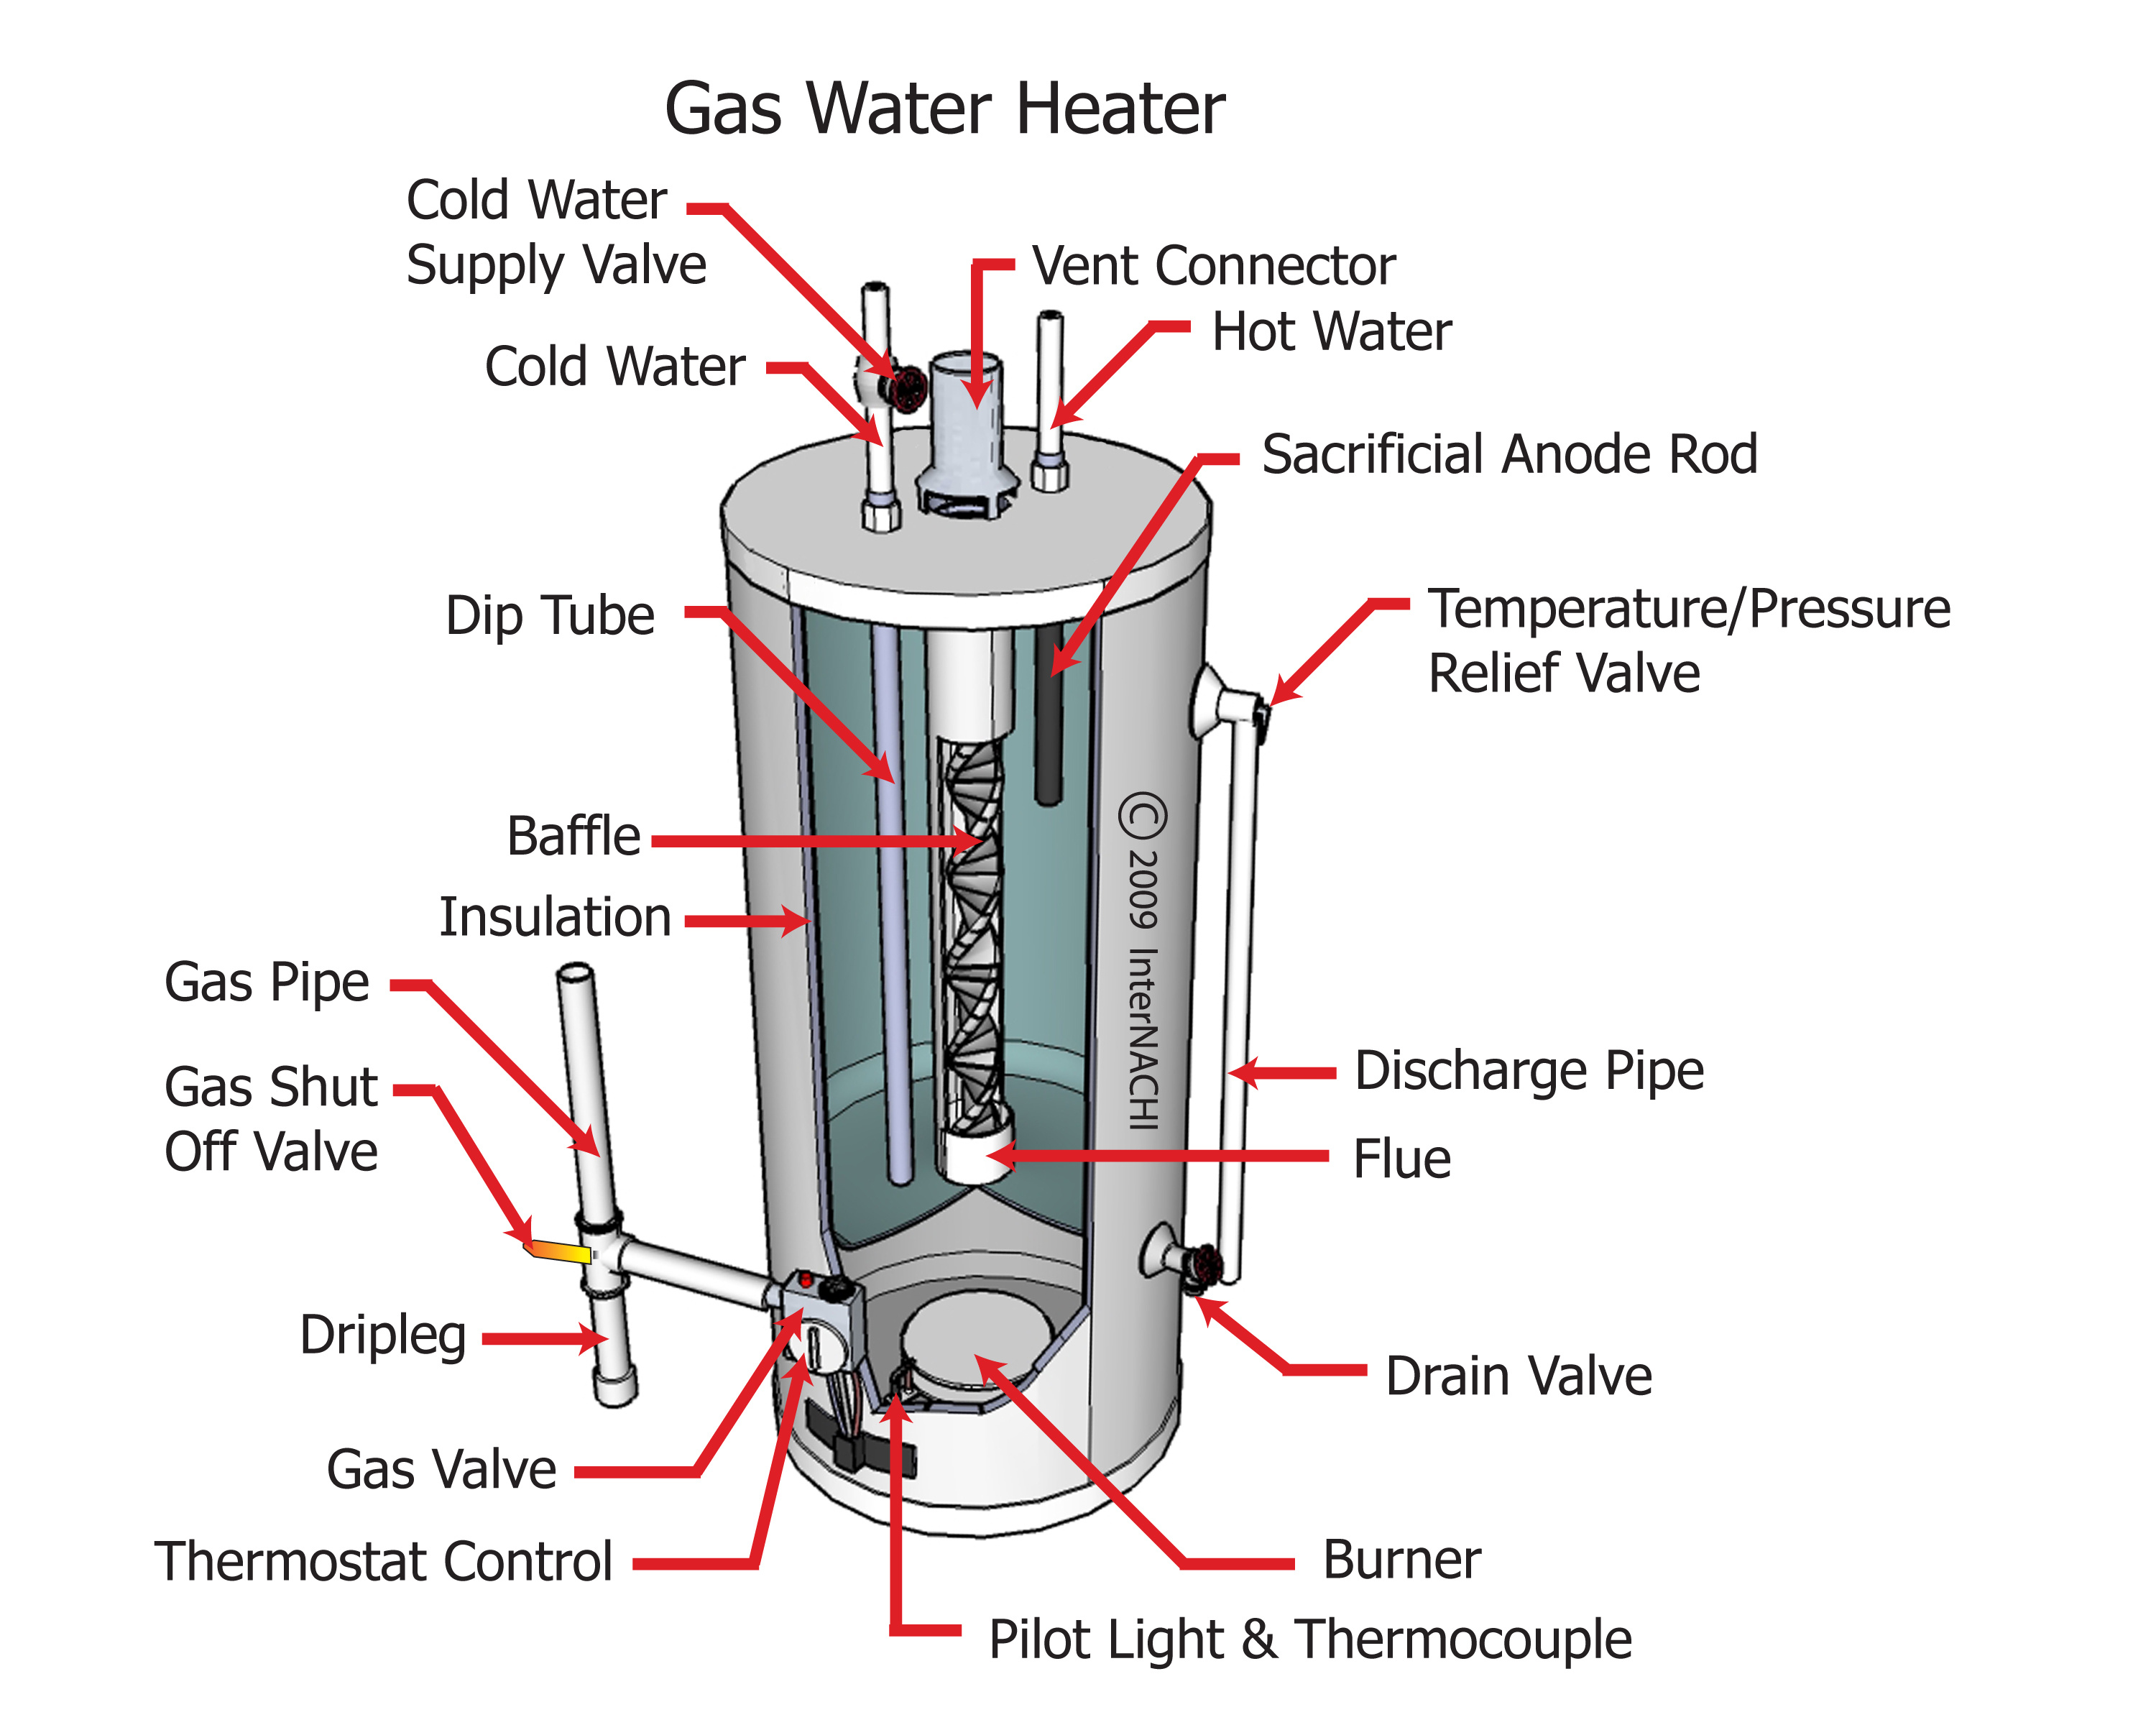 gas water heater diagram gas water heater with gas shut off valve inspection gallery gas water heater schematic diagram gas water heater with gas shut off